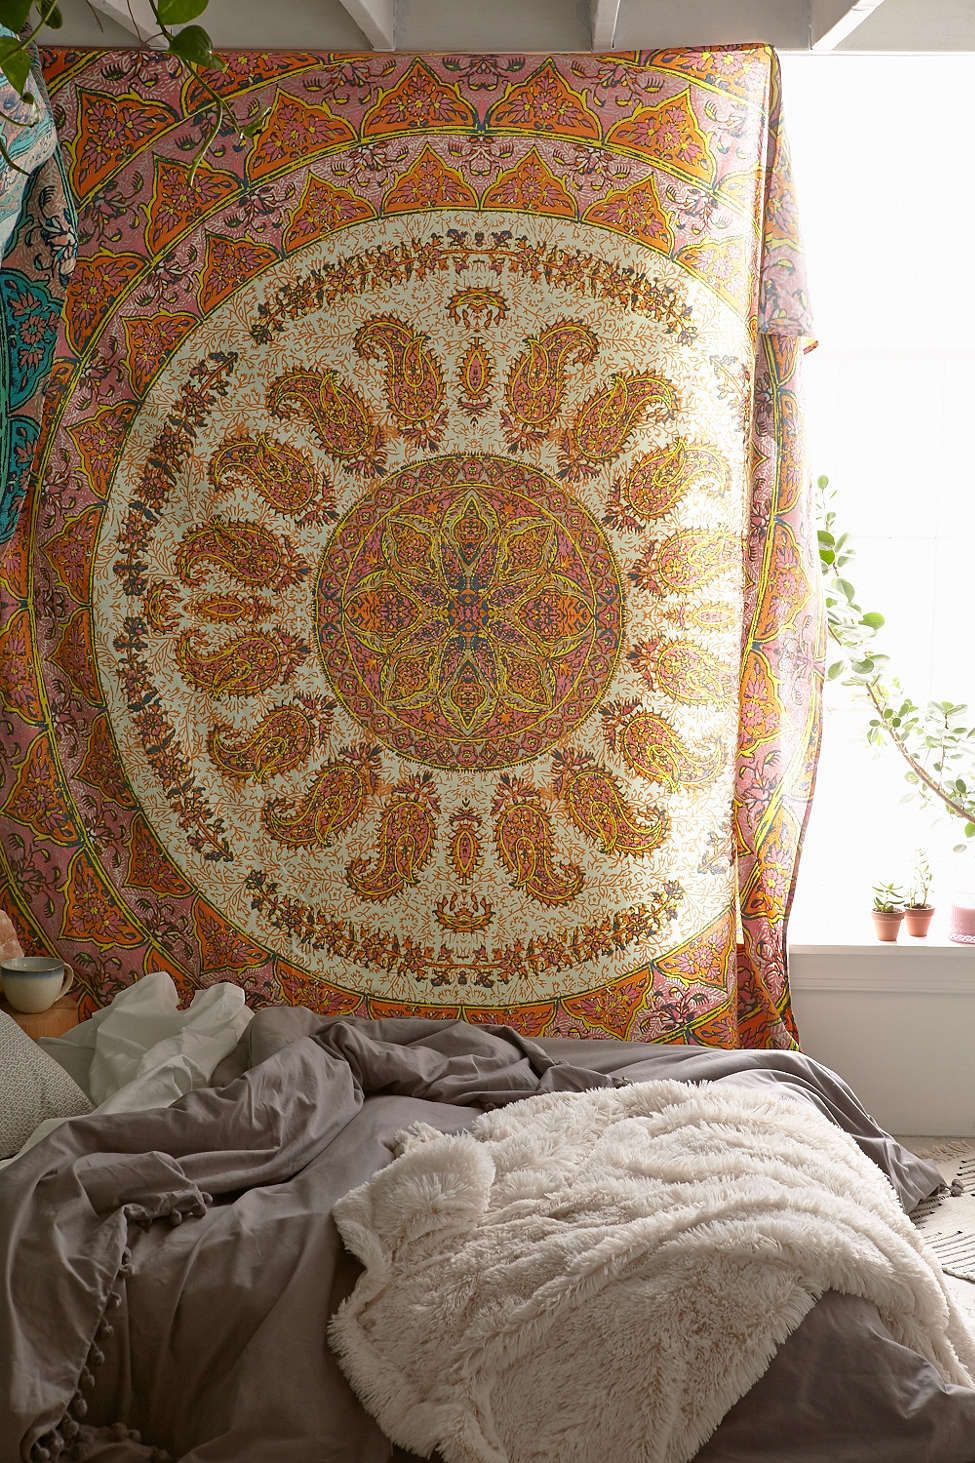 tapestry college bedrooms medallion room dorm pinterest on wall center best magical thinking images